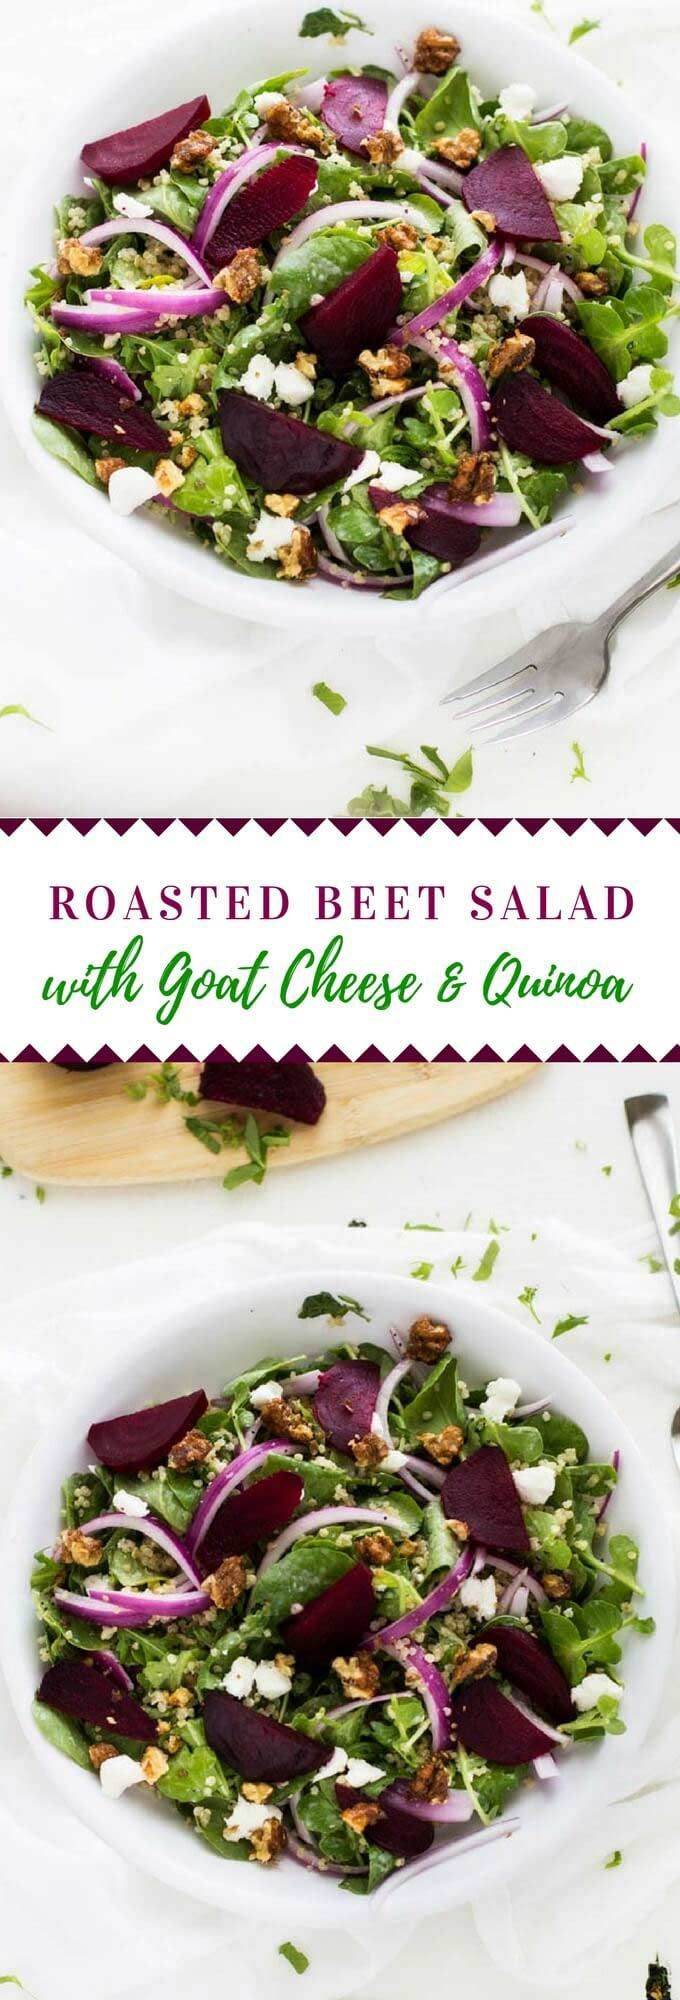 This Roasted Beet Salad with Goat Cheese & Quinoa has a delicious poppy seed dressing.  It makes a fabulous vegetarian main course salad or side dish. #quinoa #salad #vegetarian via @wendypolisi